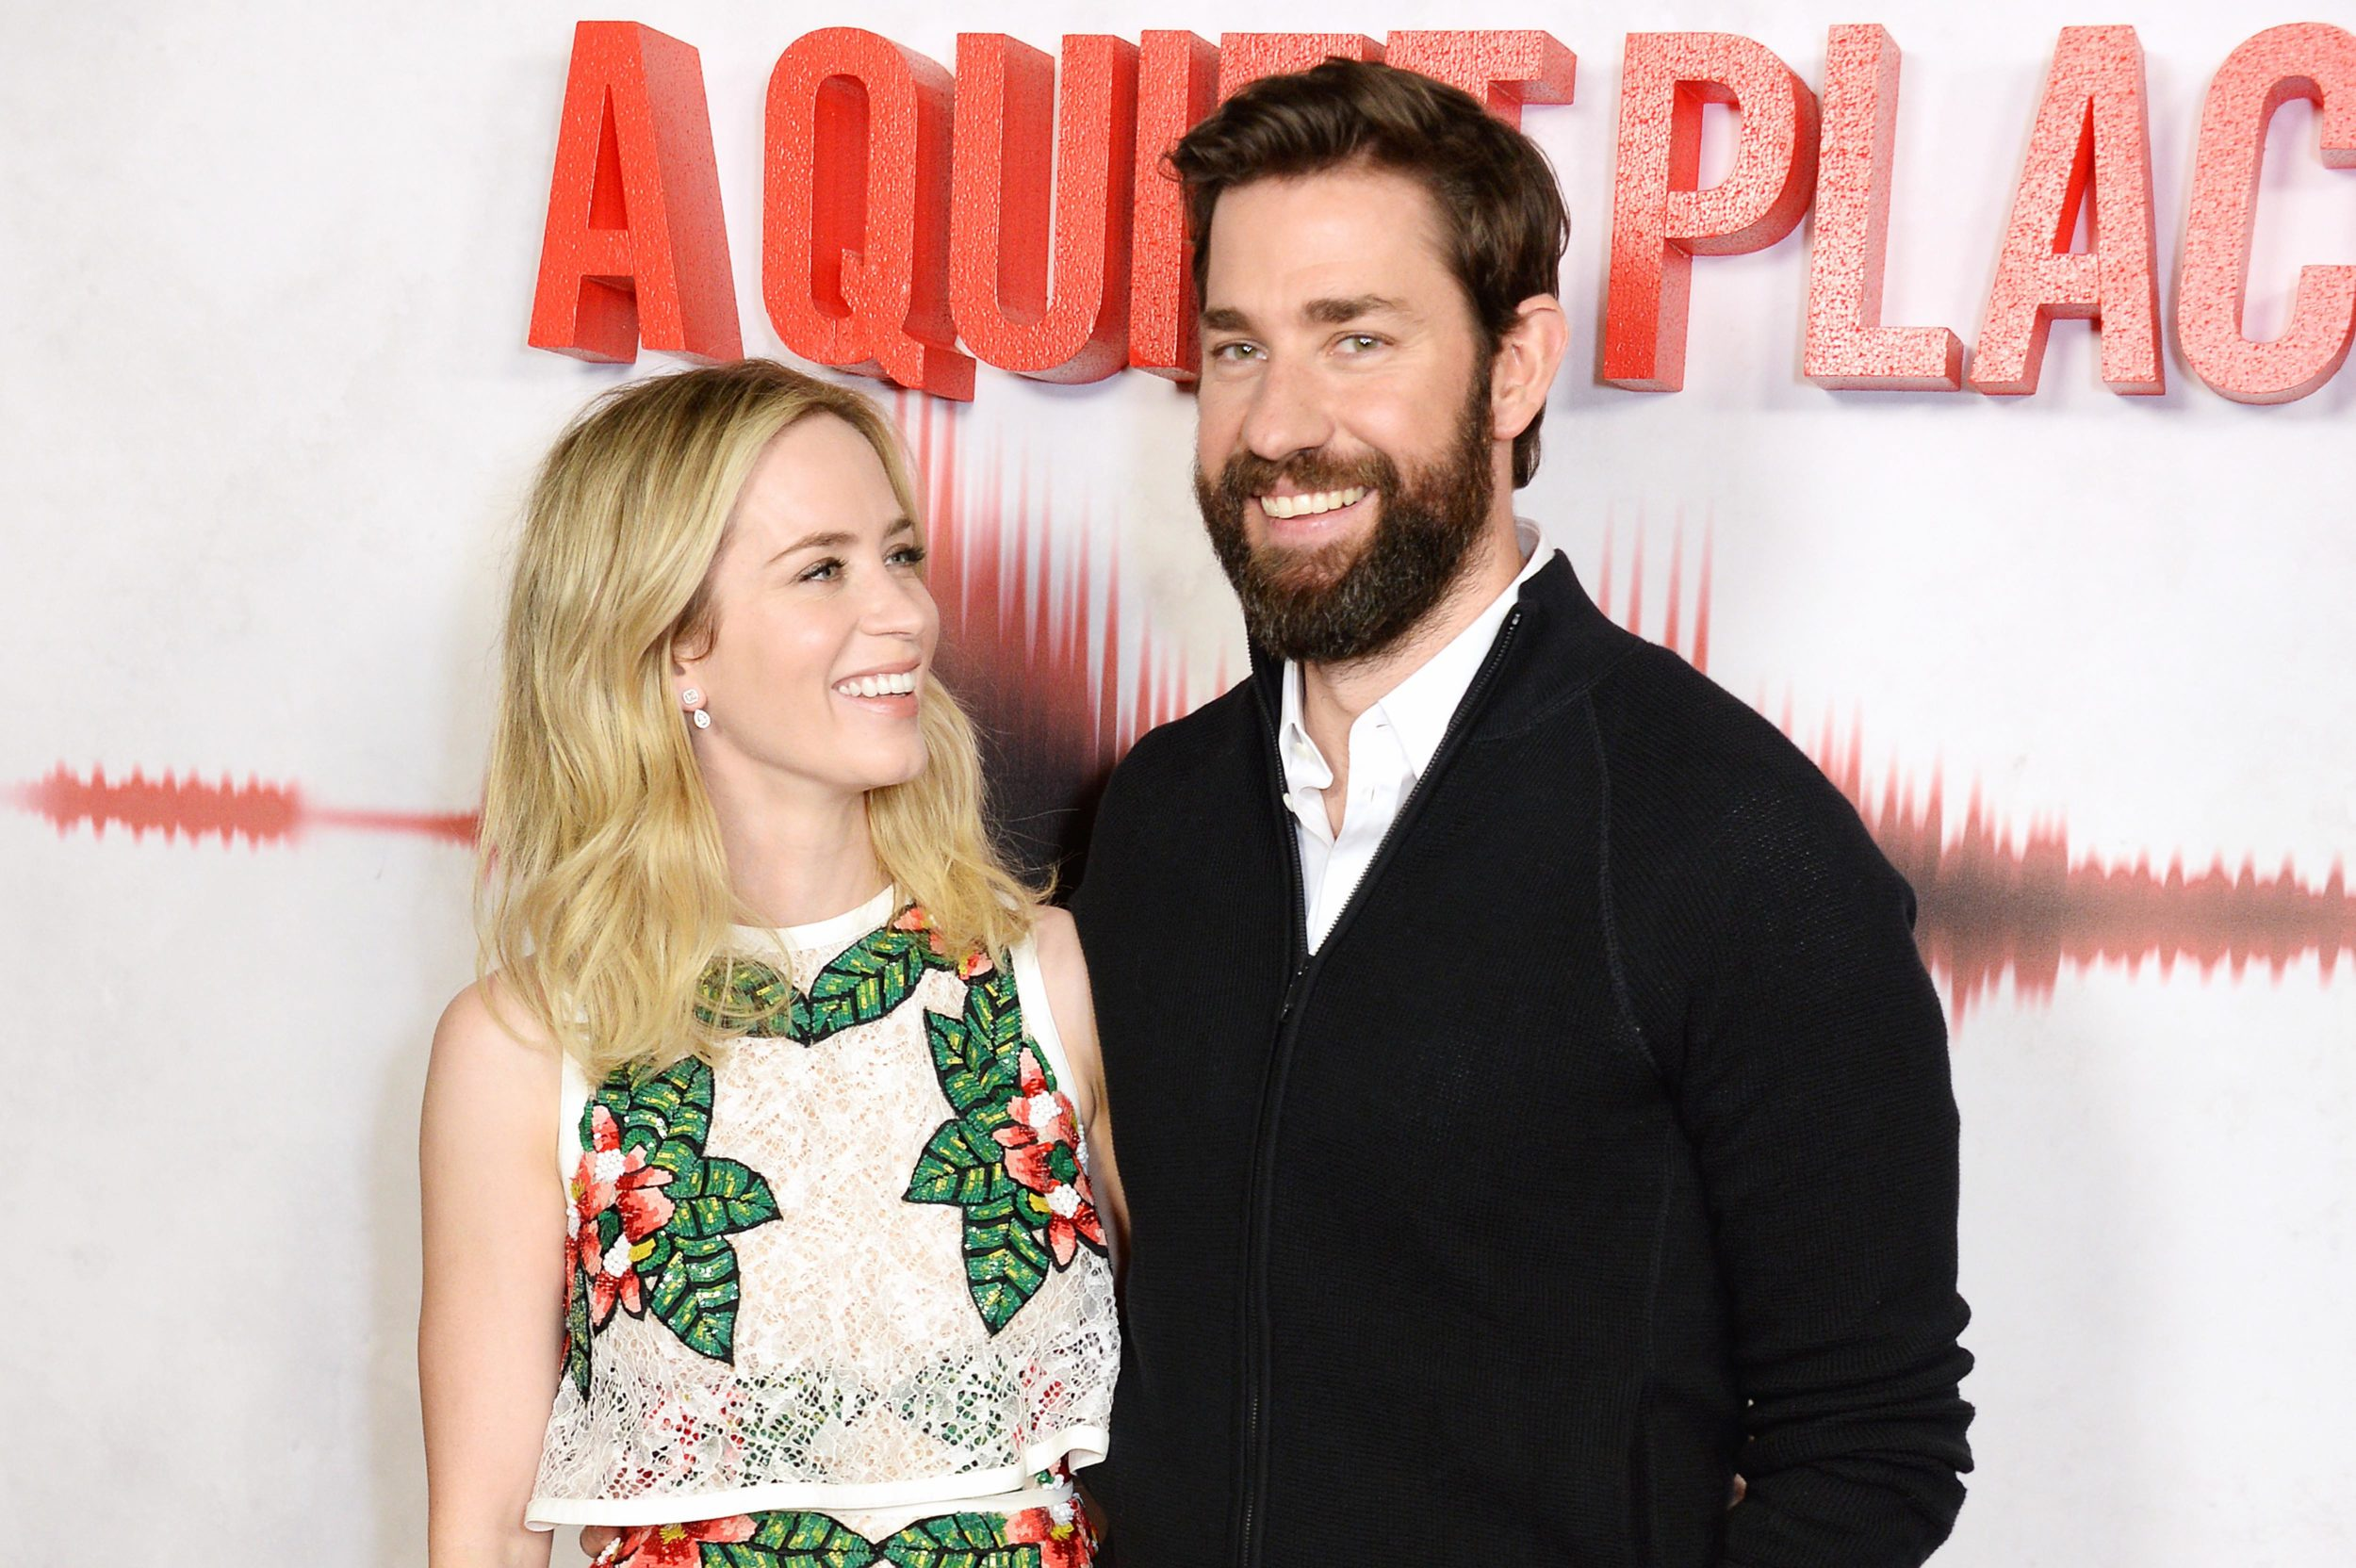 John Krasinski adoringly teased wife Emily Blunt about liking her former costar, and we've never loved them more